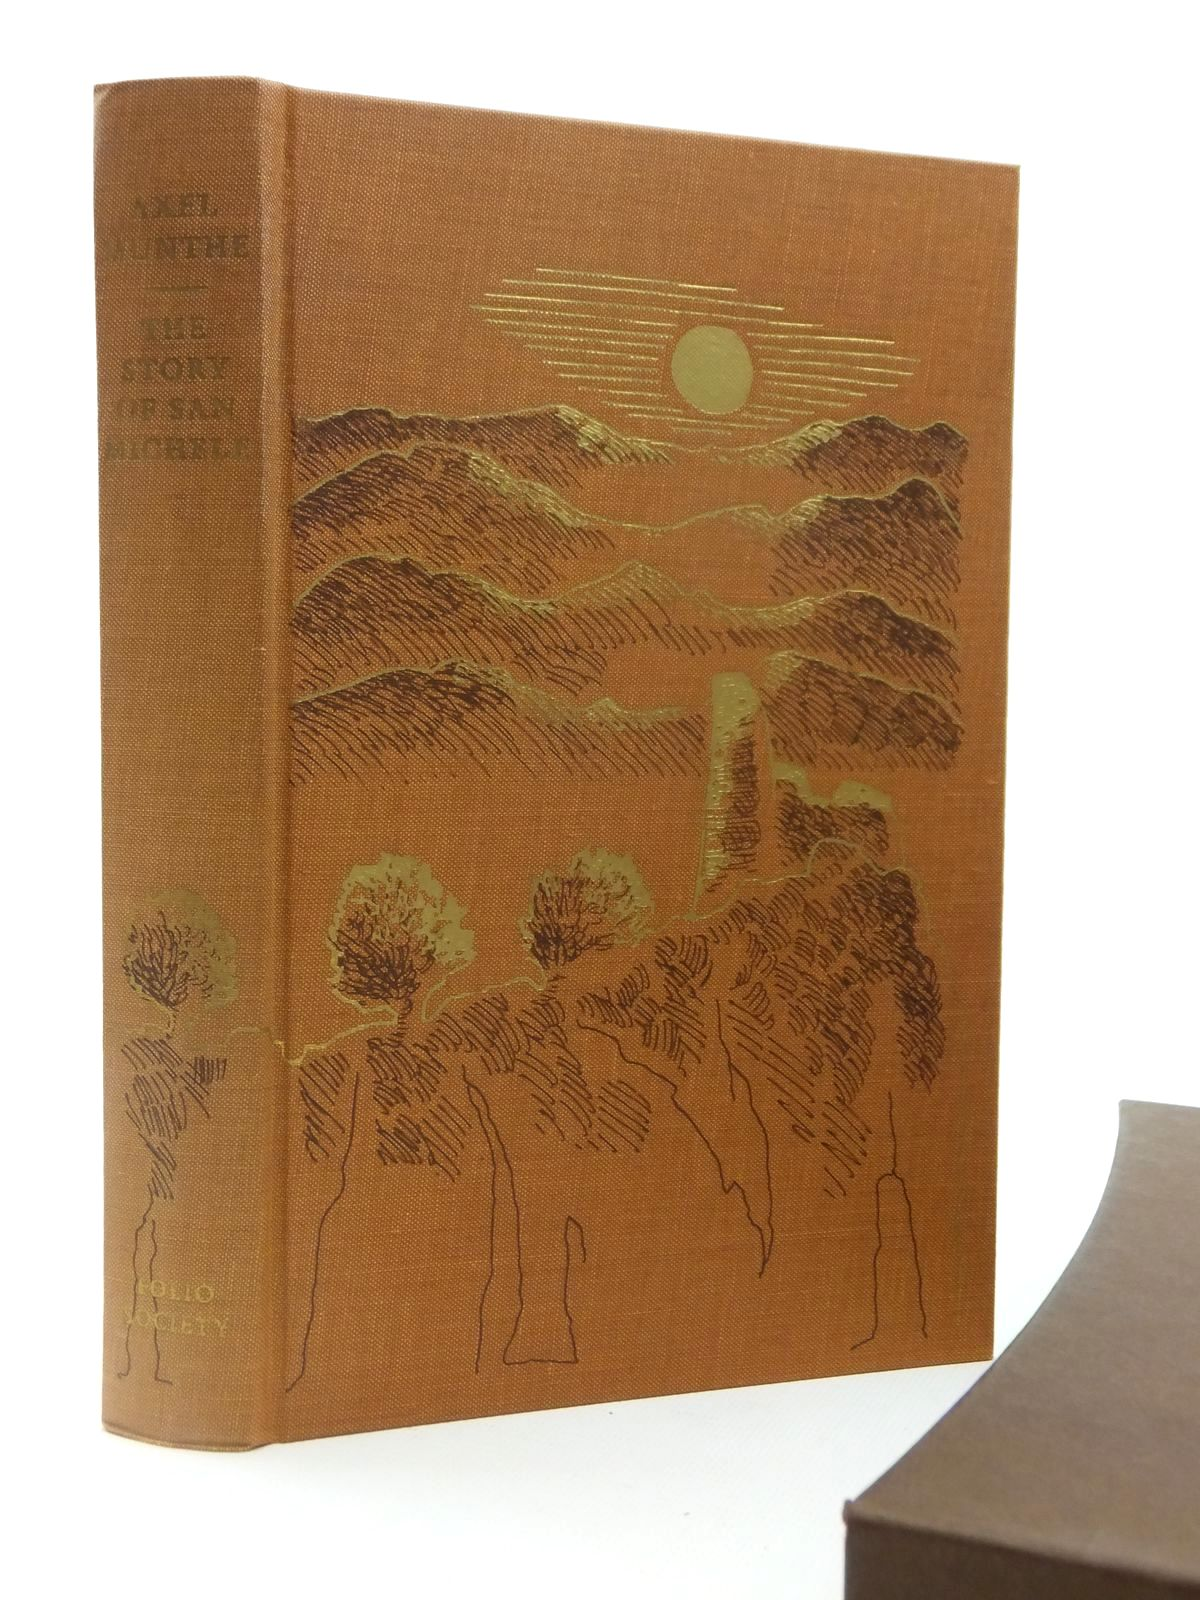 Photo of THE STORY OF SAN MICHELE written by Munthe, Axel published by Folio Society (STOCK CODE: 2122507)  for sale by Stella & Rose's Books